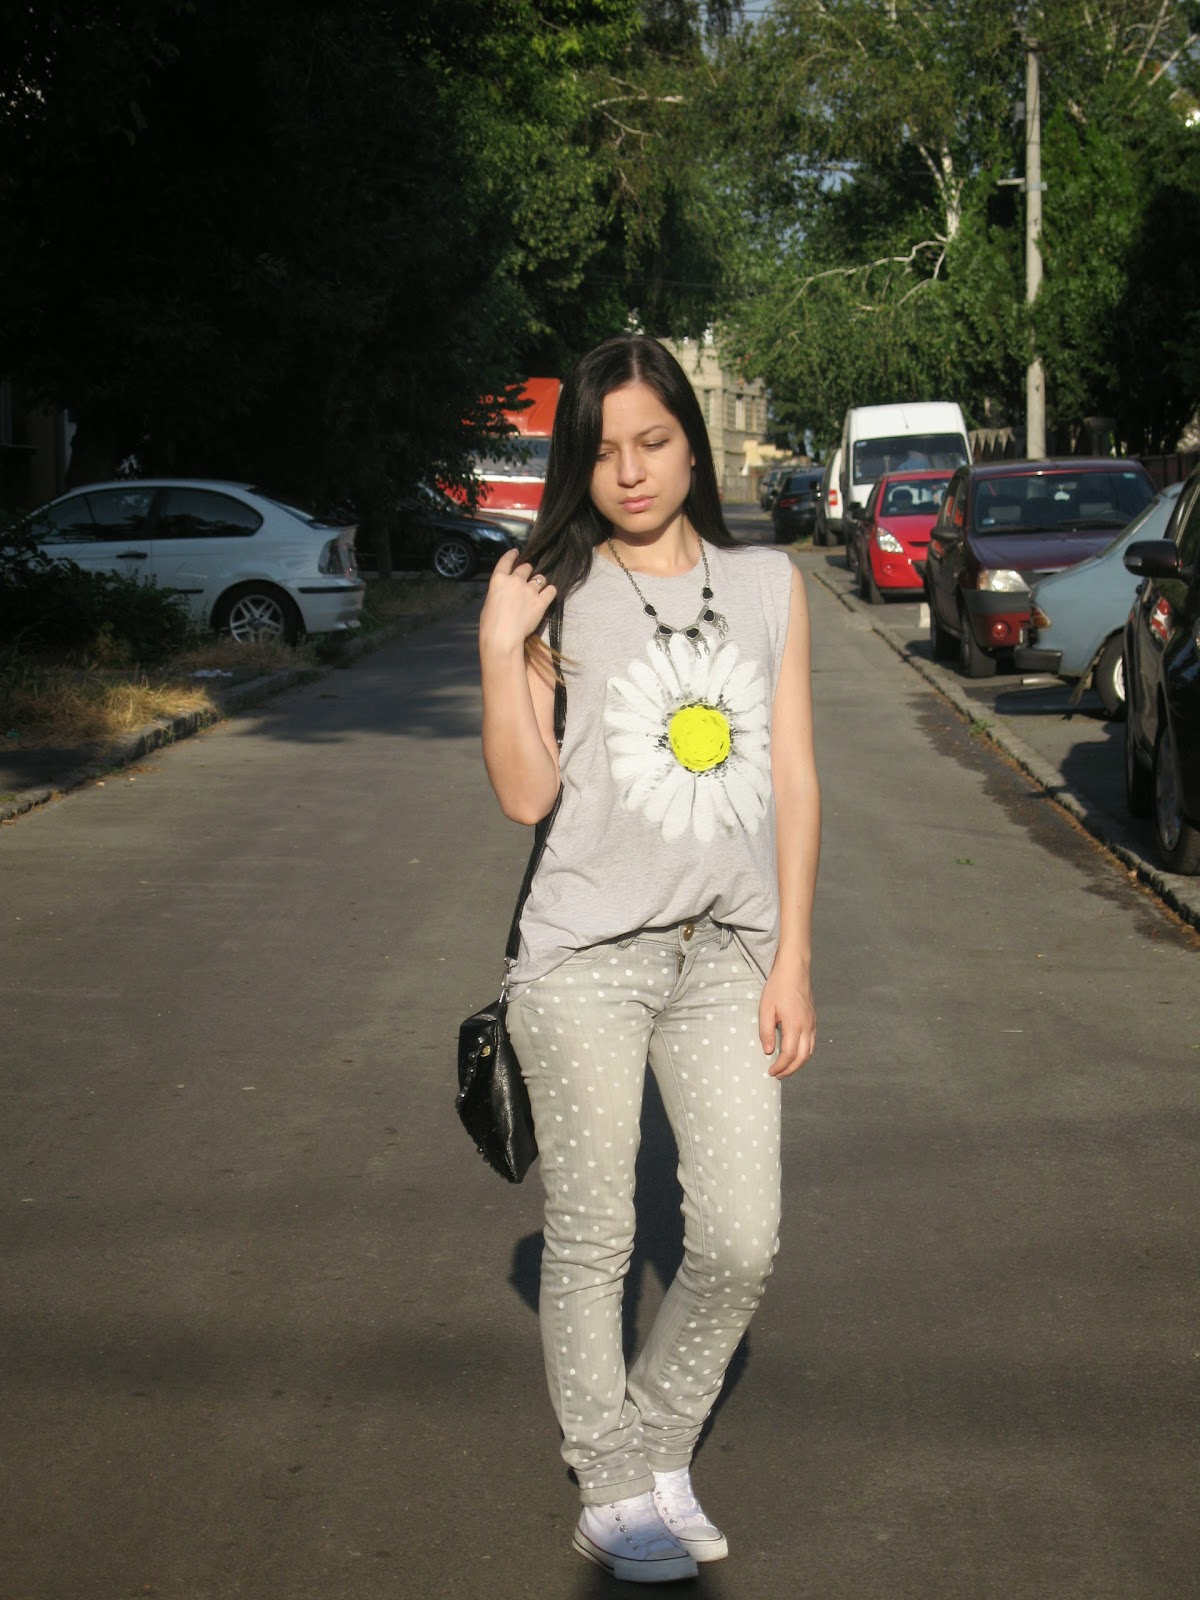 deichmann white sneakers, white converse, grey jeans with polka dots, daisy print top DIY, grey top with white daisy print, black studded clutch, casual look, sporty chic